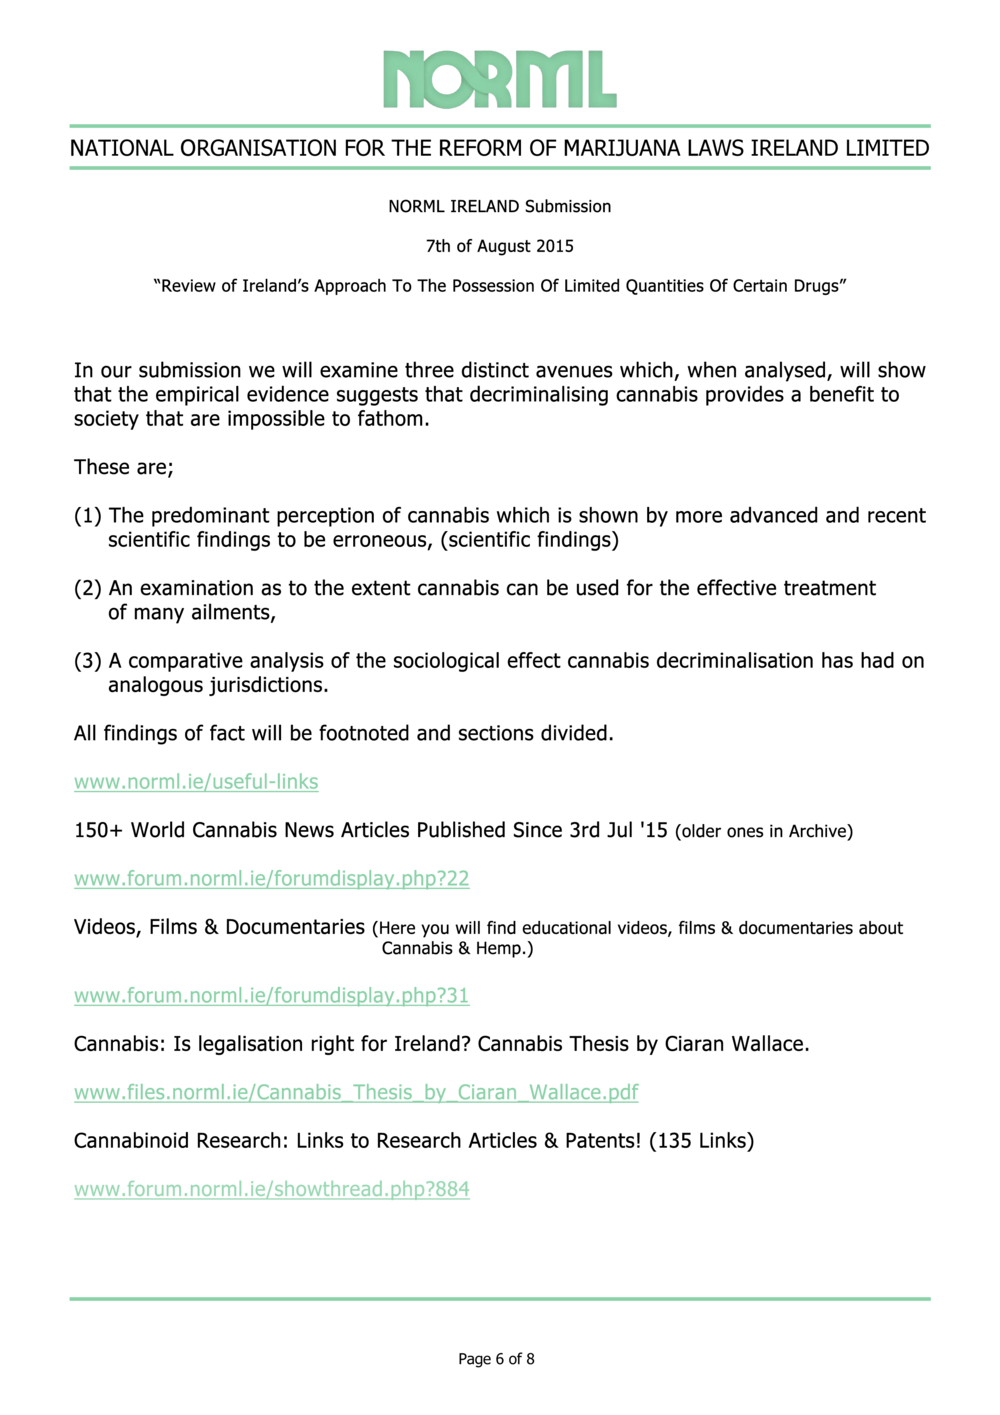 NORML Ireland Submission Page 6 of 8.png